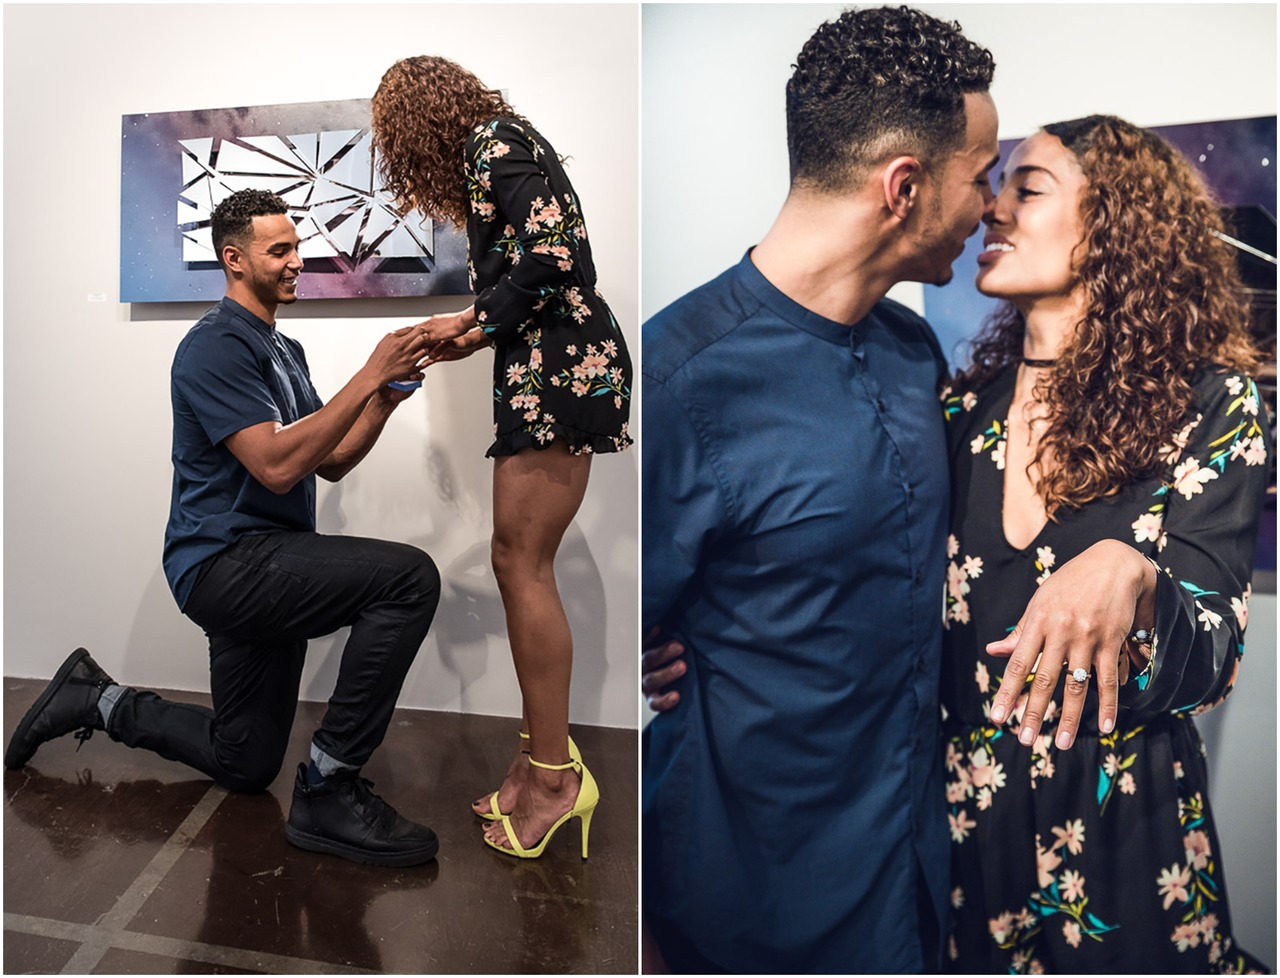 Collage of Skylar Diggins and Daniel Smith's engagement. In one image, Daniel is kneeling down, and in the other image, Skylar is flaunting her wedding ring.